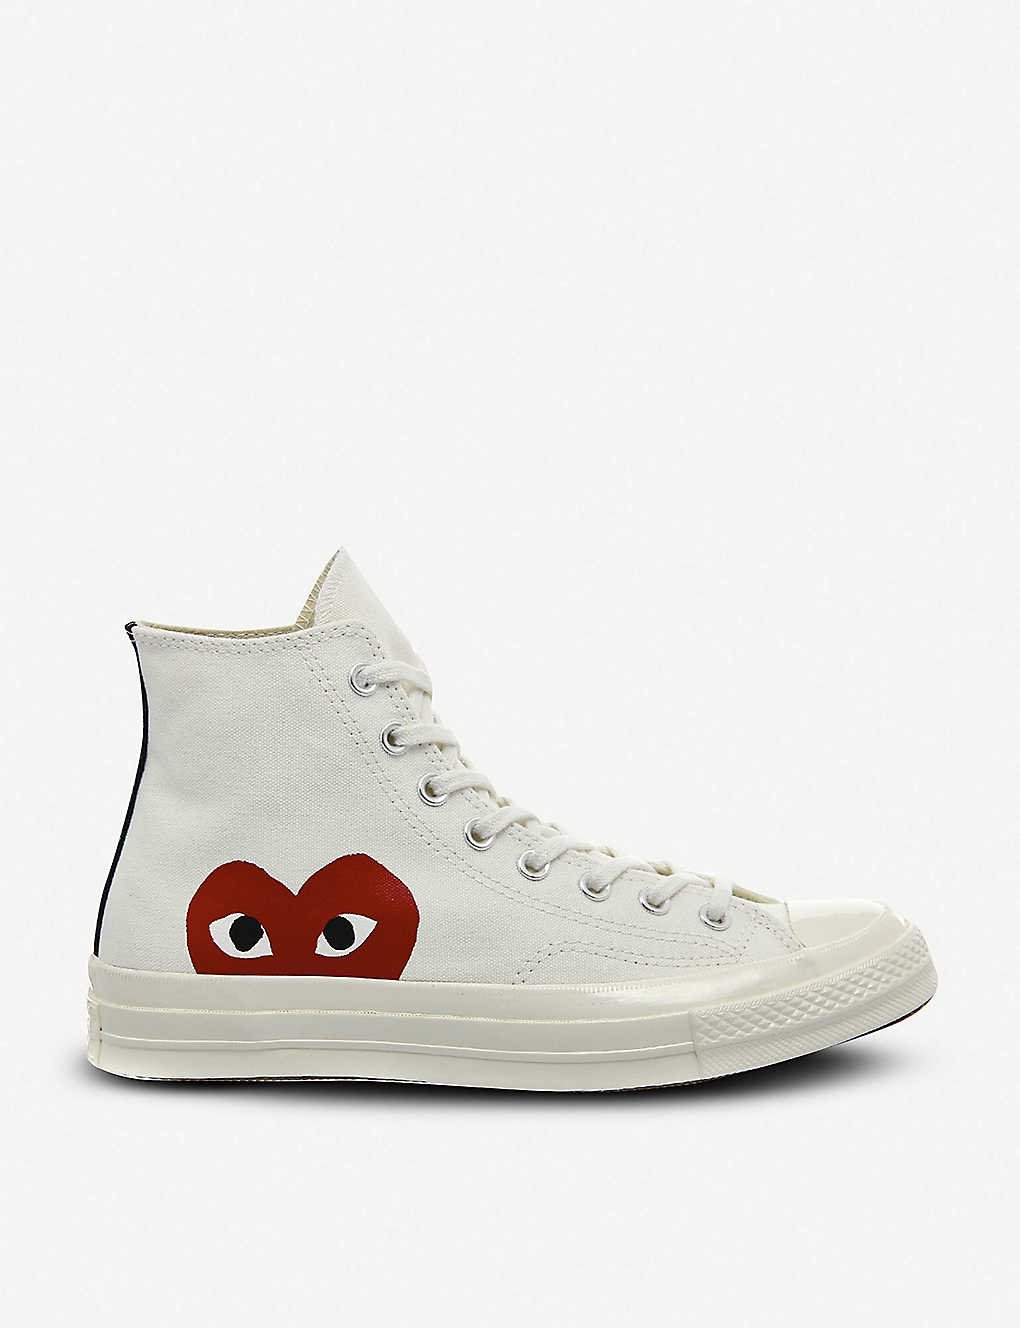 fe2a8c89d8ad COMME DES GARCONS - Converse high-top 70s x play cdg trainers ...